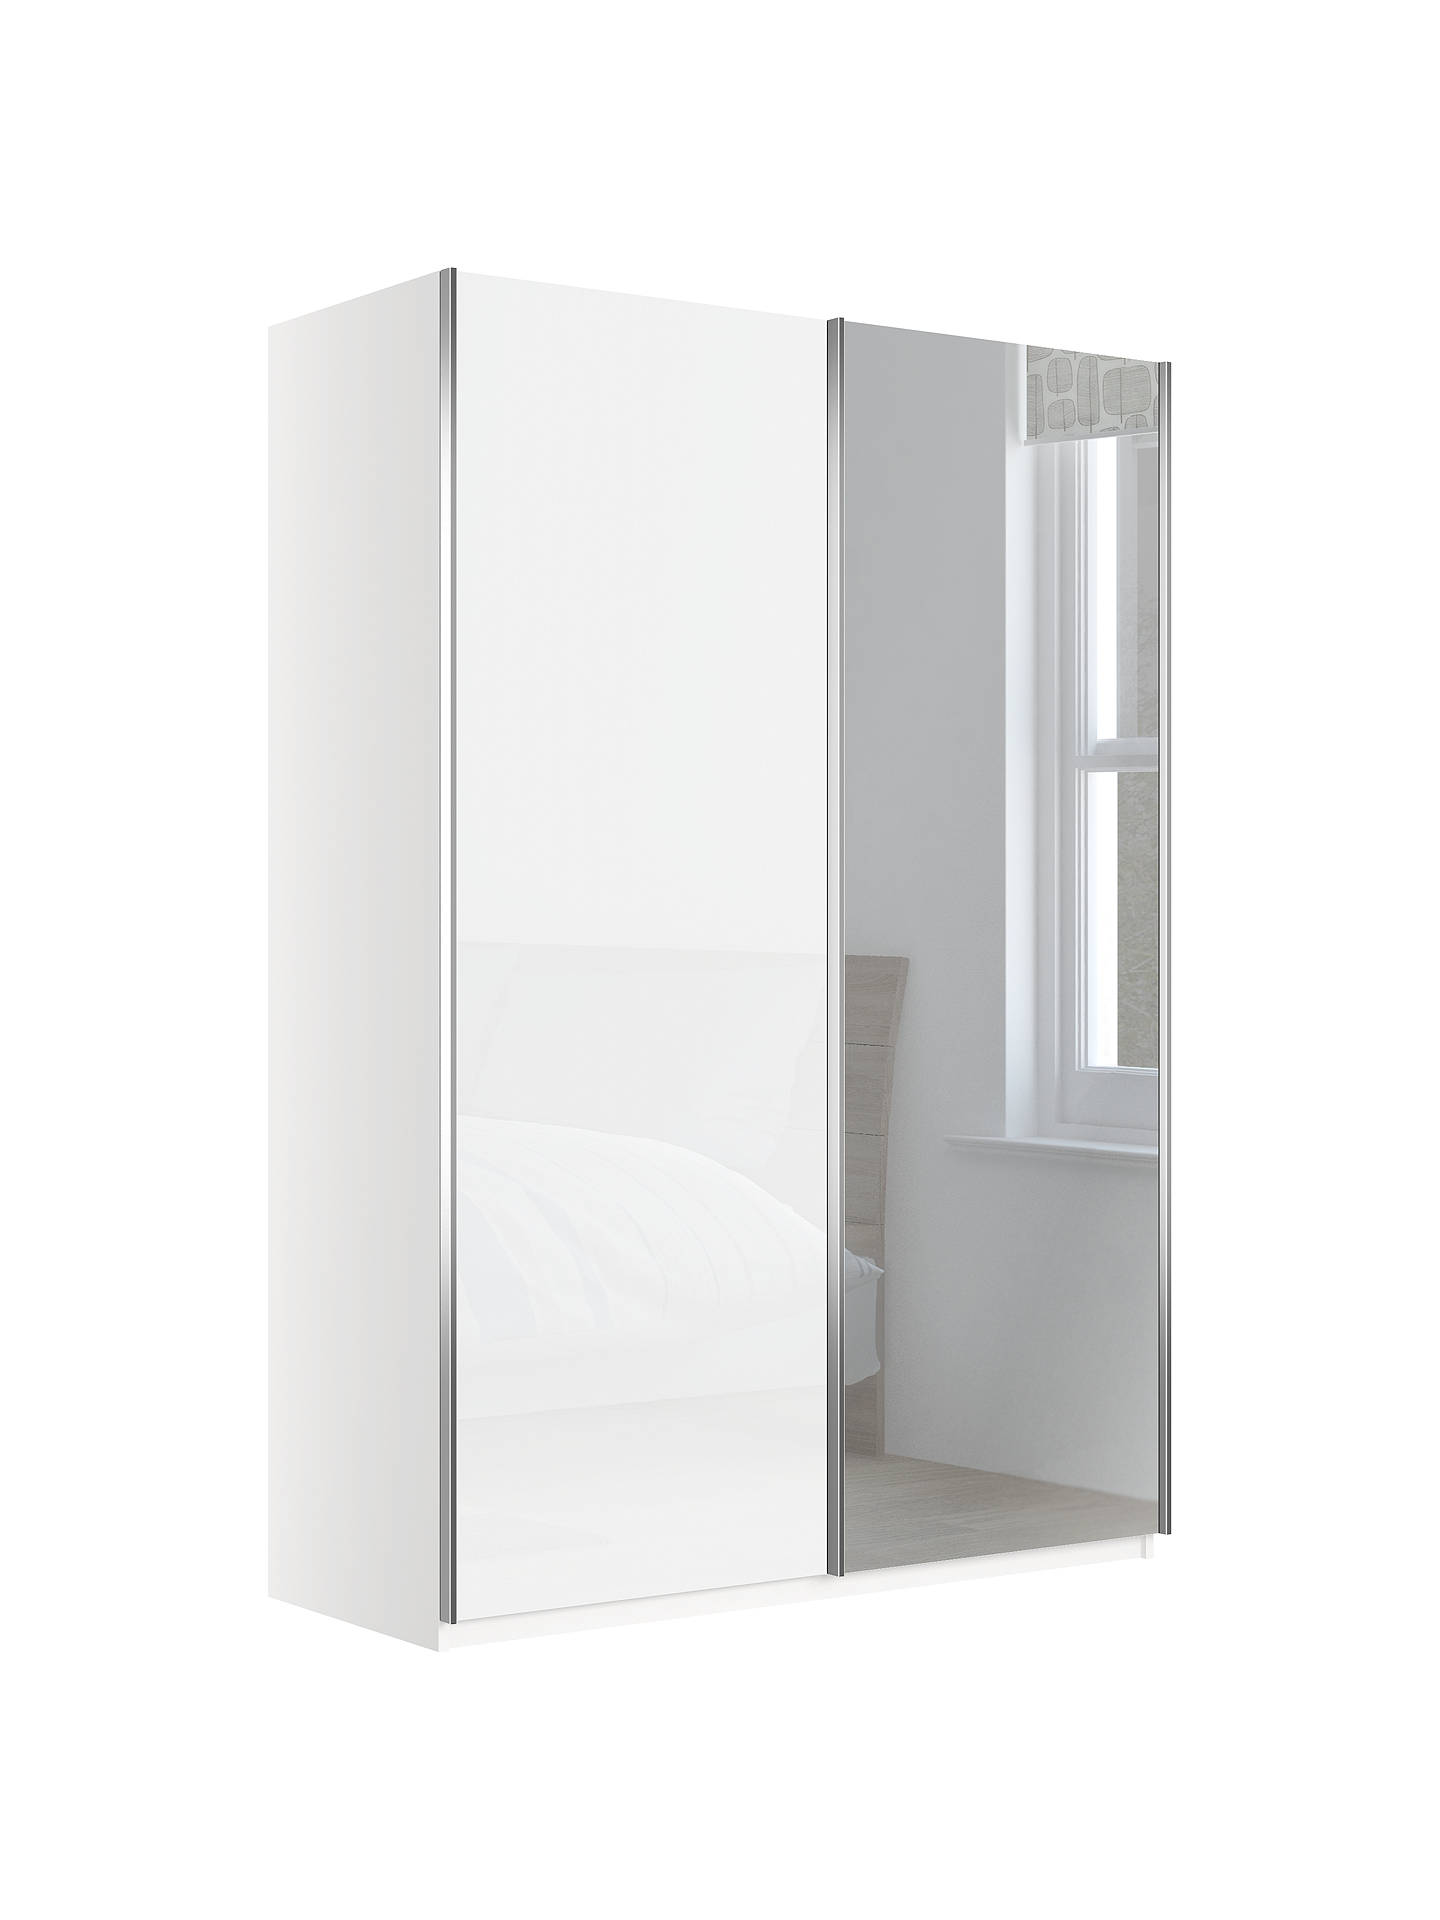 BuyJohn Lewis & Partners Elstra 150cm Wardrobe with White Glass and Mirrored Sliding Doors, White Alpine Online at johnlewis.com